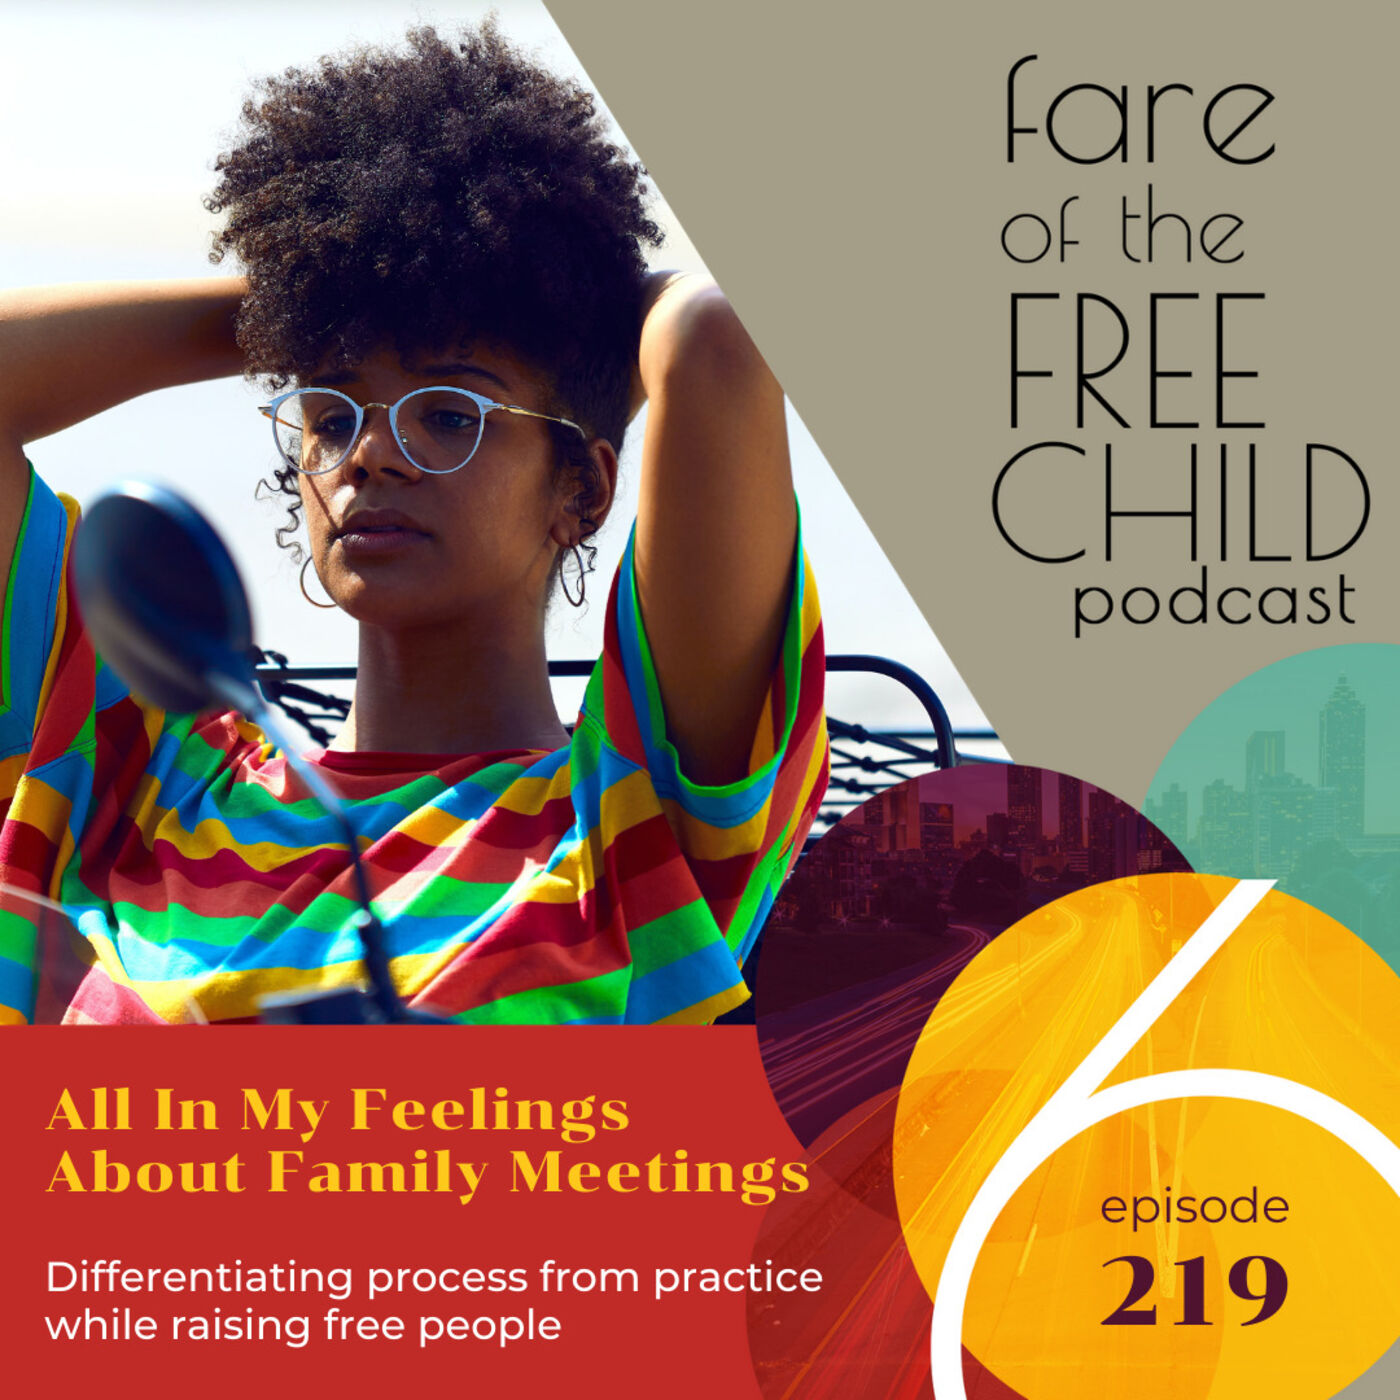 Ep 219: All In My Feelings About Family Meetings